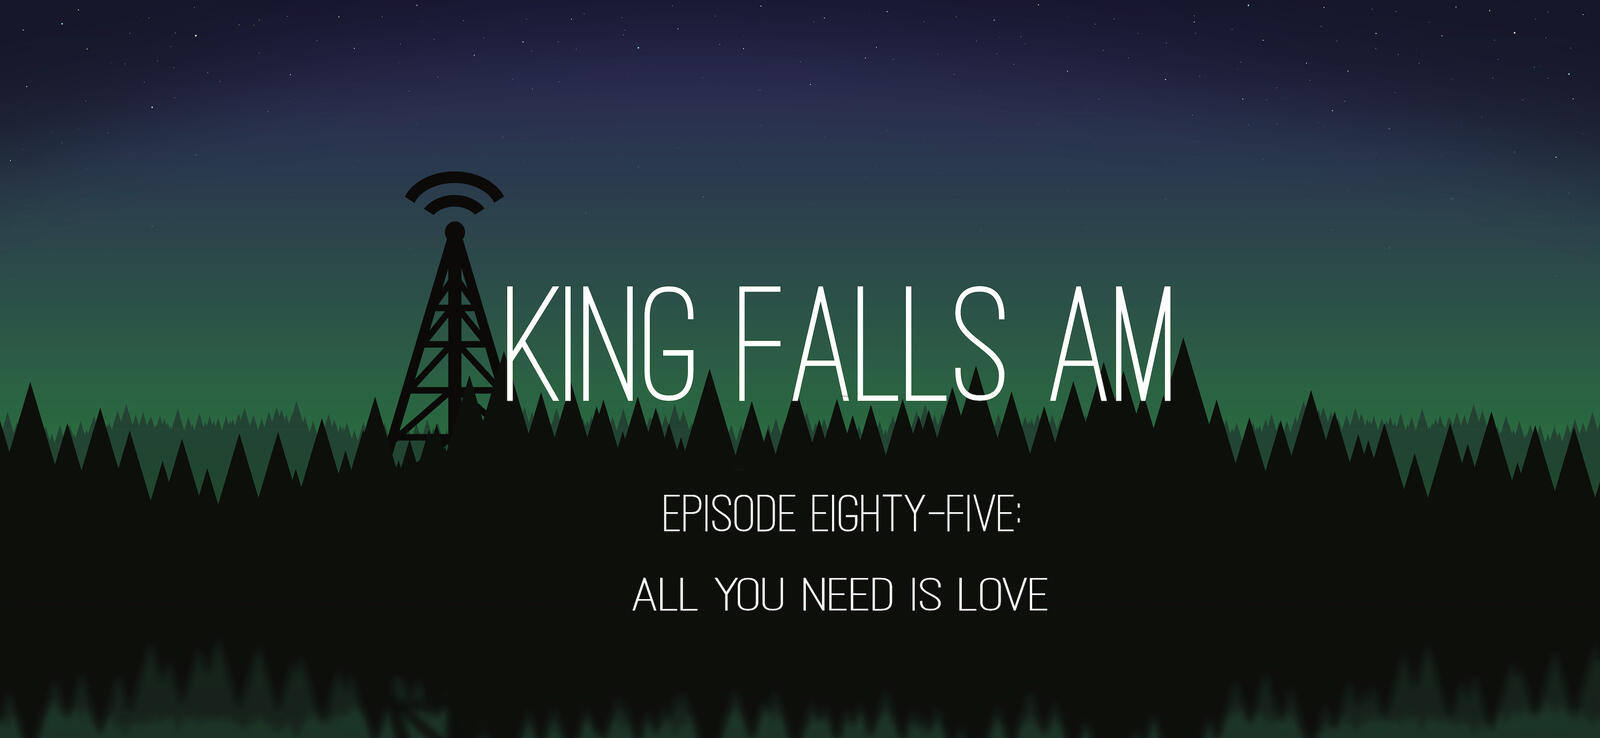 Episode Eighty-Five: All You Need Is Love